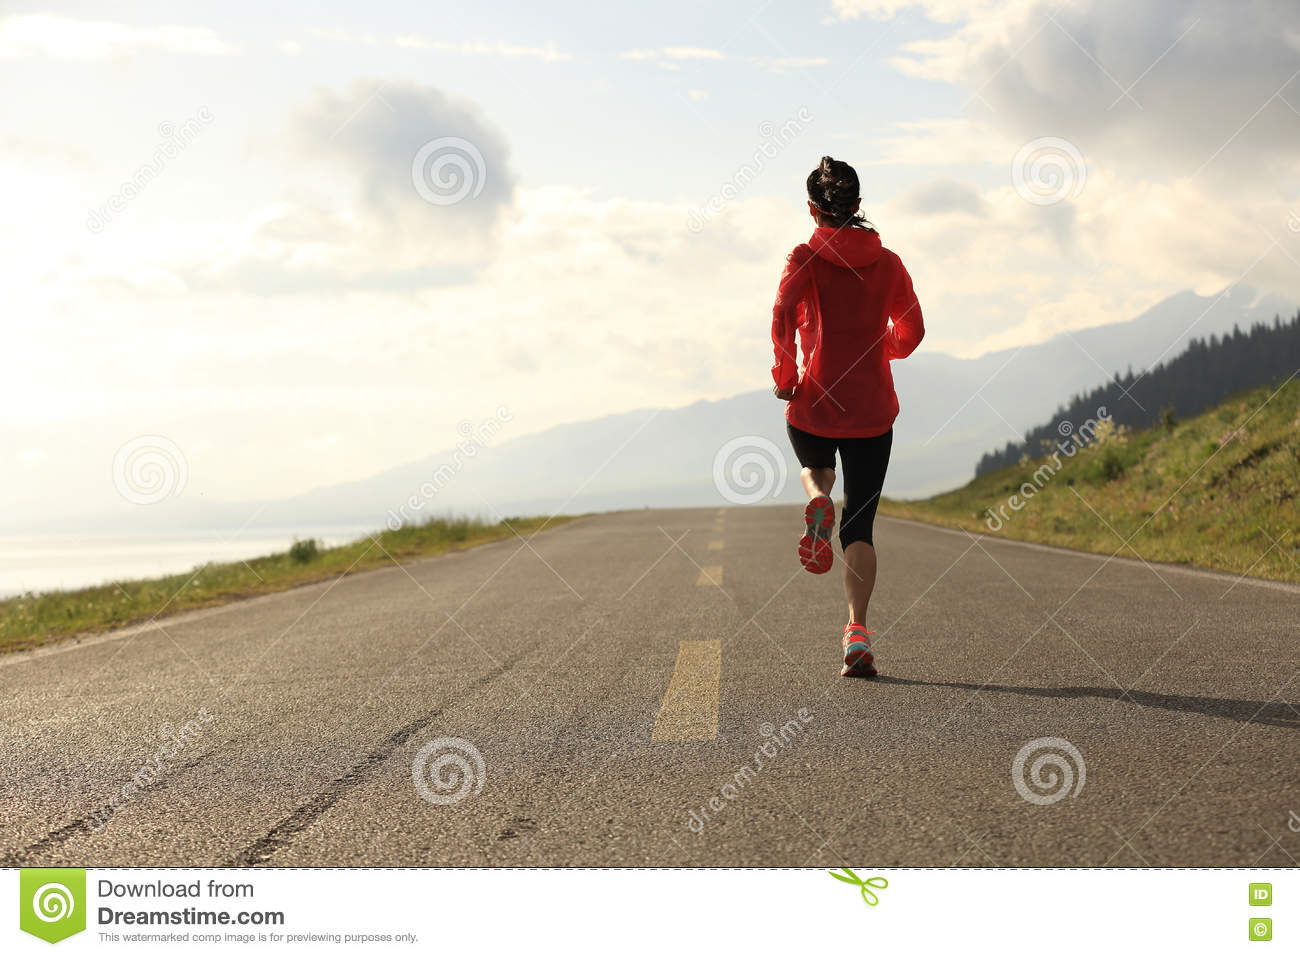 Woman runner running on road